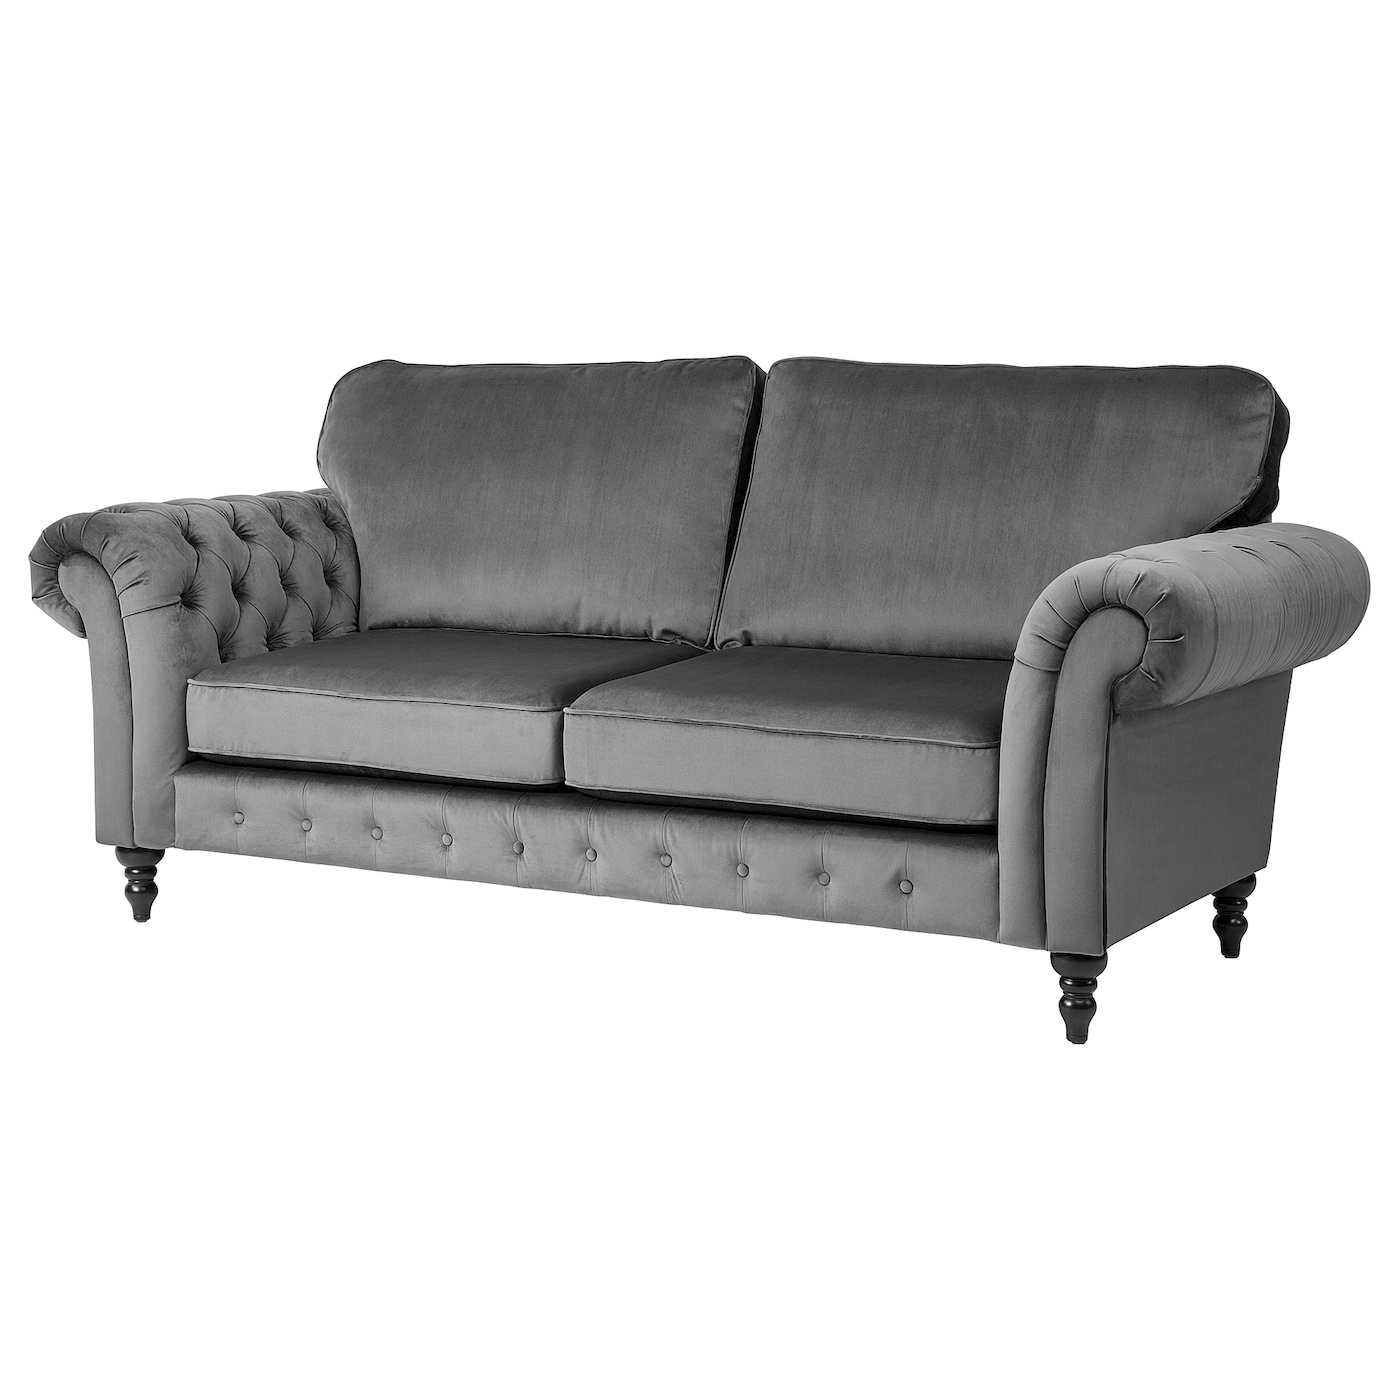 Ikea Grevie 3 Seat Sofa